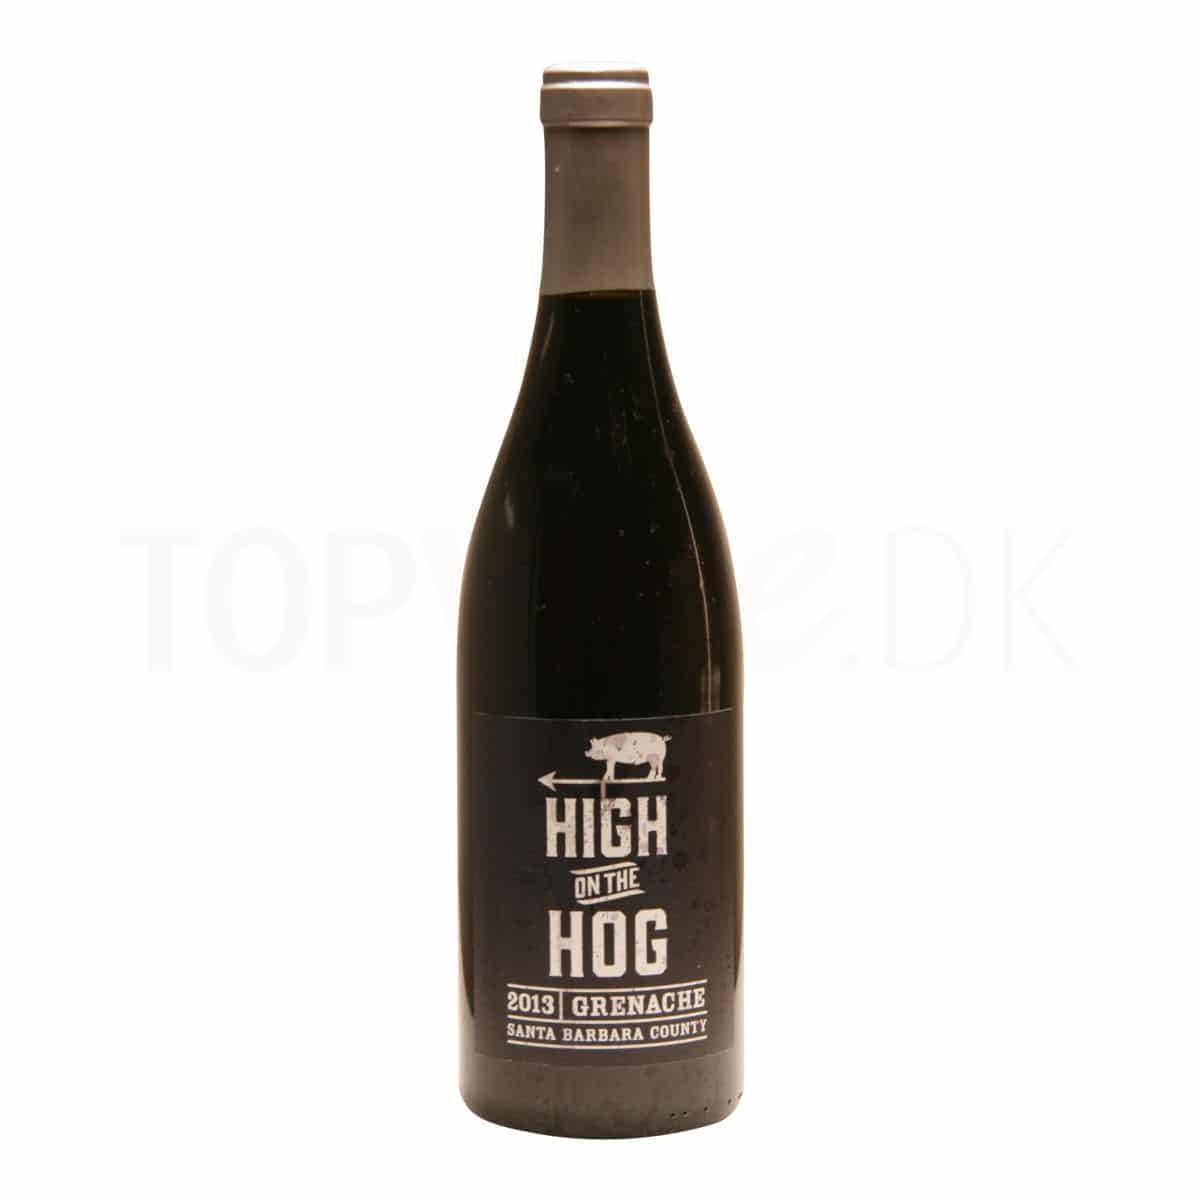 Topvine McPrice Meyers High on the hog 2013 Grenache